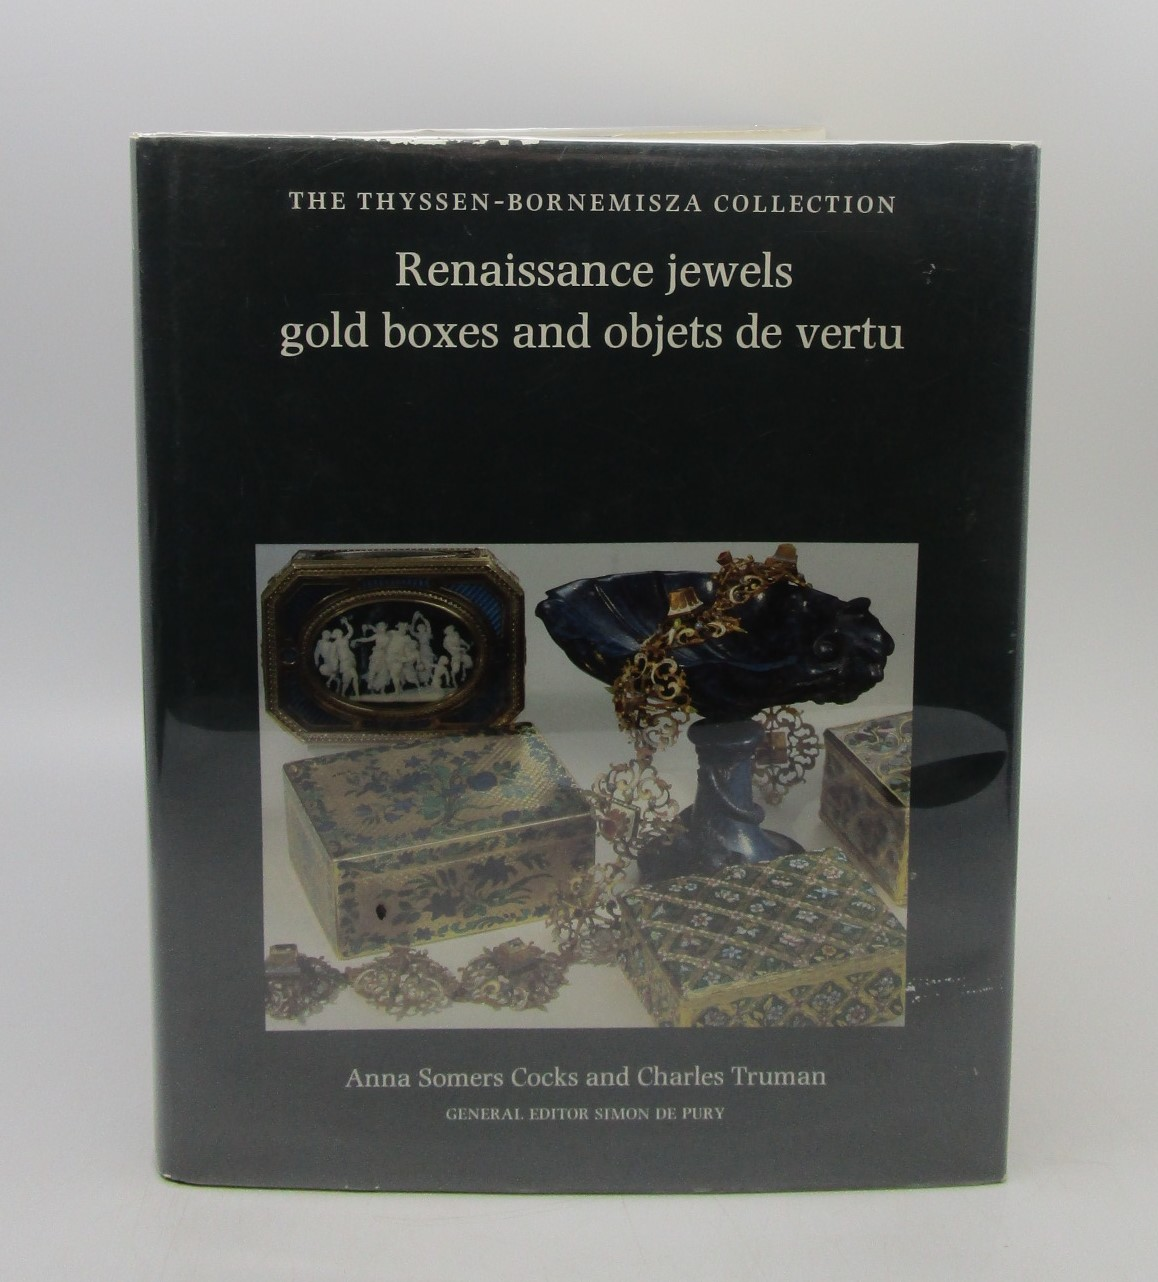 Image for Renaissance Jewels, Gold Boxes and Objets De Vertu: The Thyssen-Bornemisza Collection (First Edition)